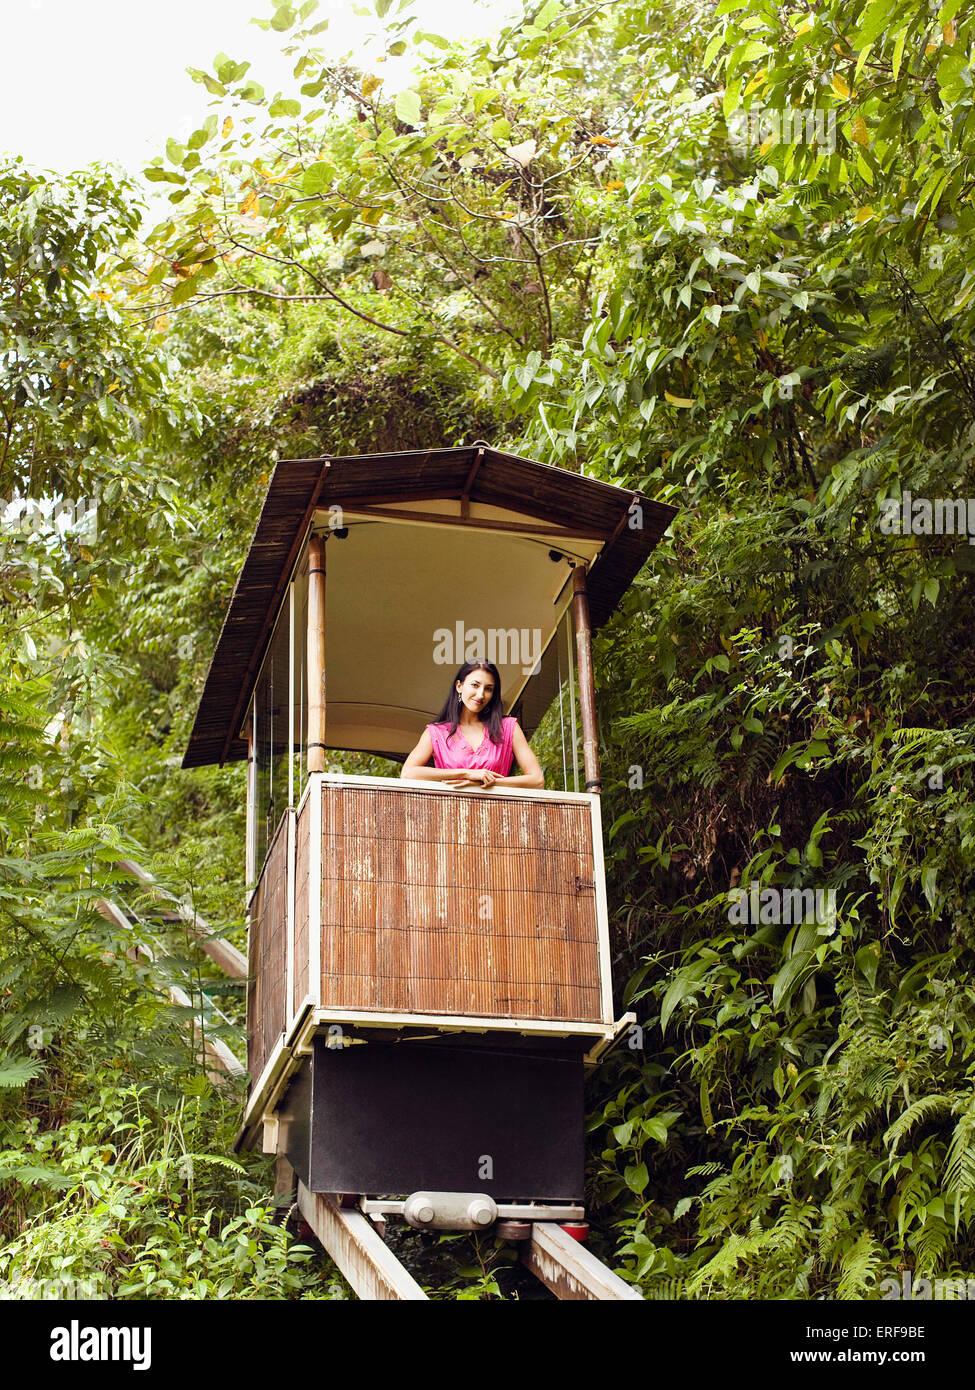 Young woman rides the funicular (or tram) at Ubud Hanging Gardens, Bali, Indonesia. - Stock Image